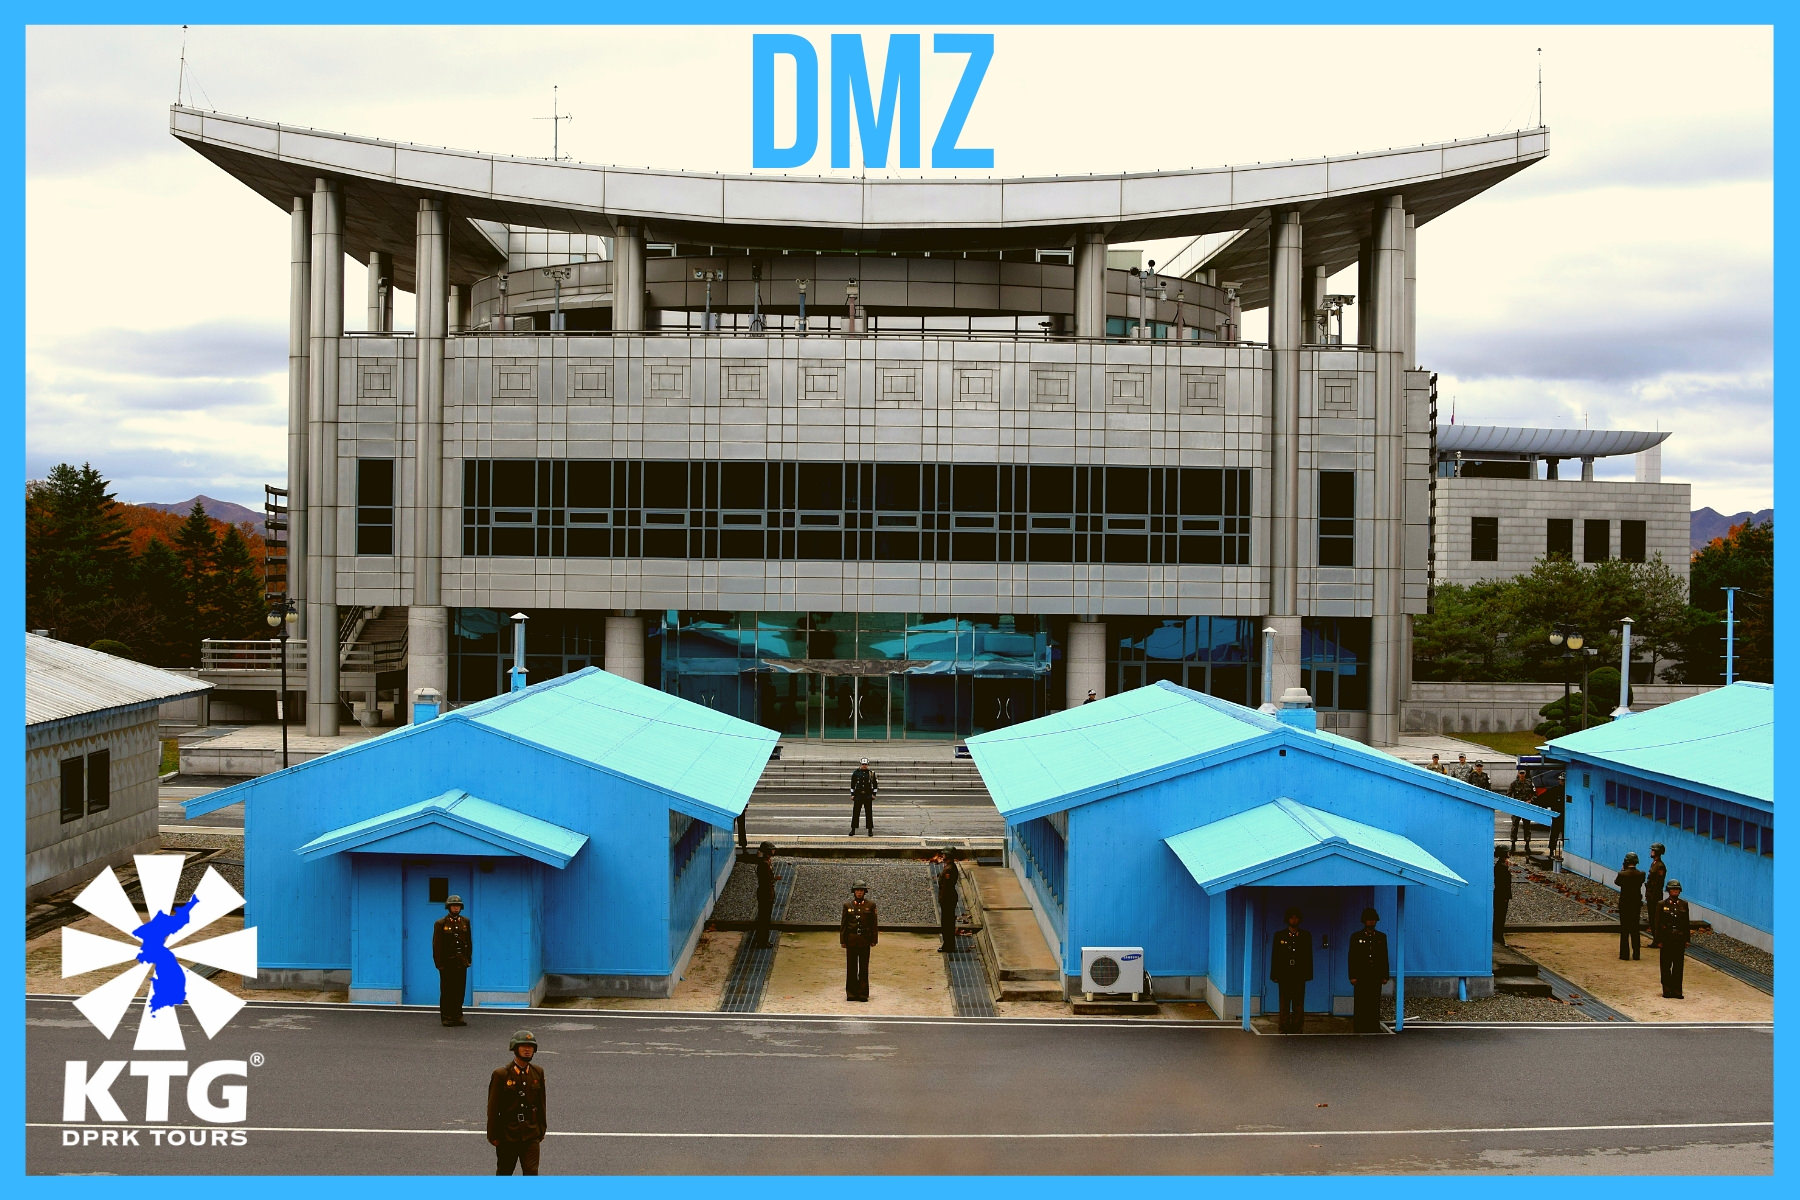 DMZ negotiation rooms